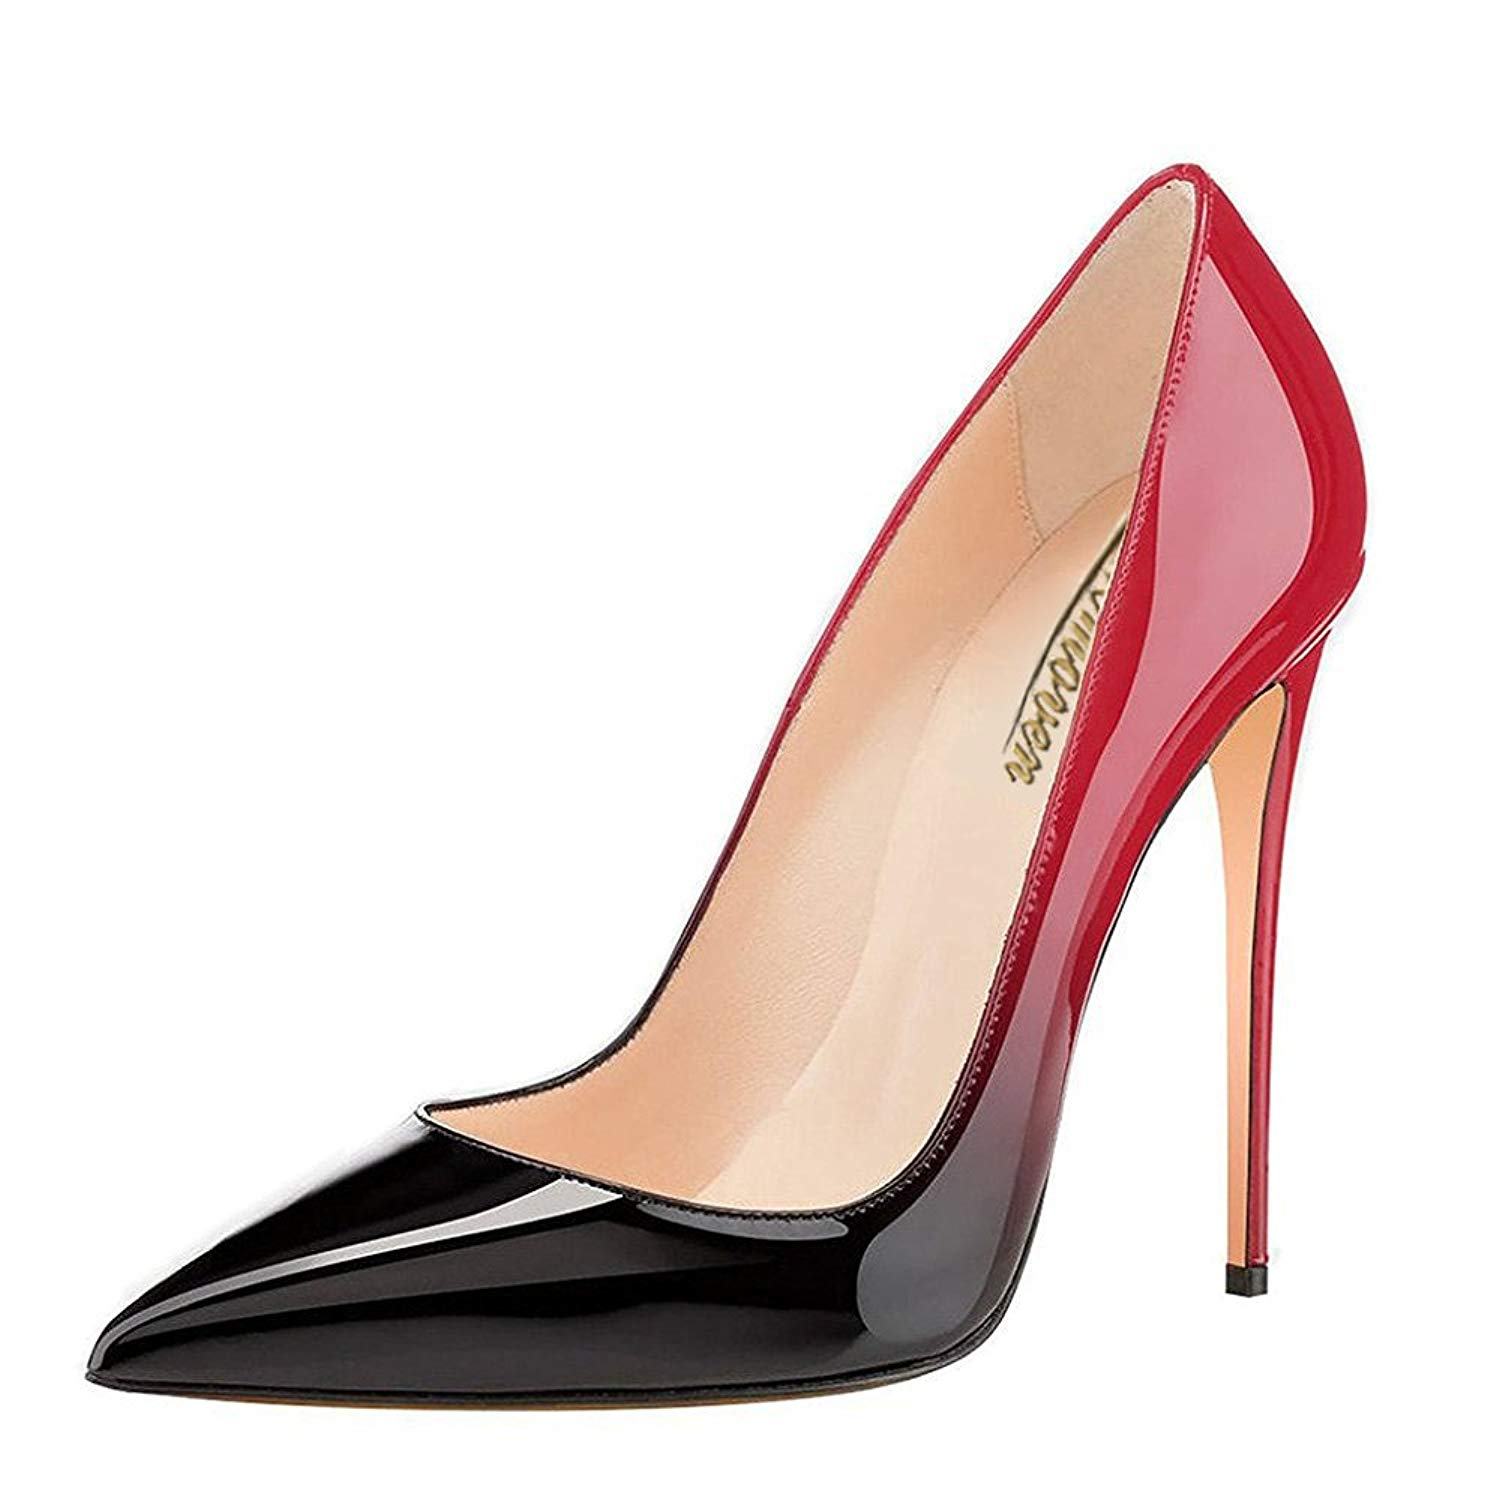 776766b3301c Get Quotations · Modemoven Women s Pointy Toe High Heels Slip On Stilettos  Large Size Wedding Party Evening Pumps Shoes